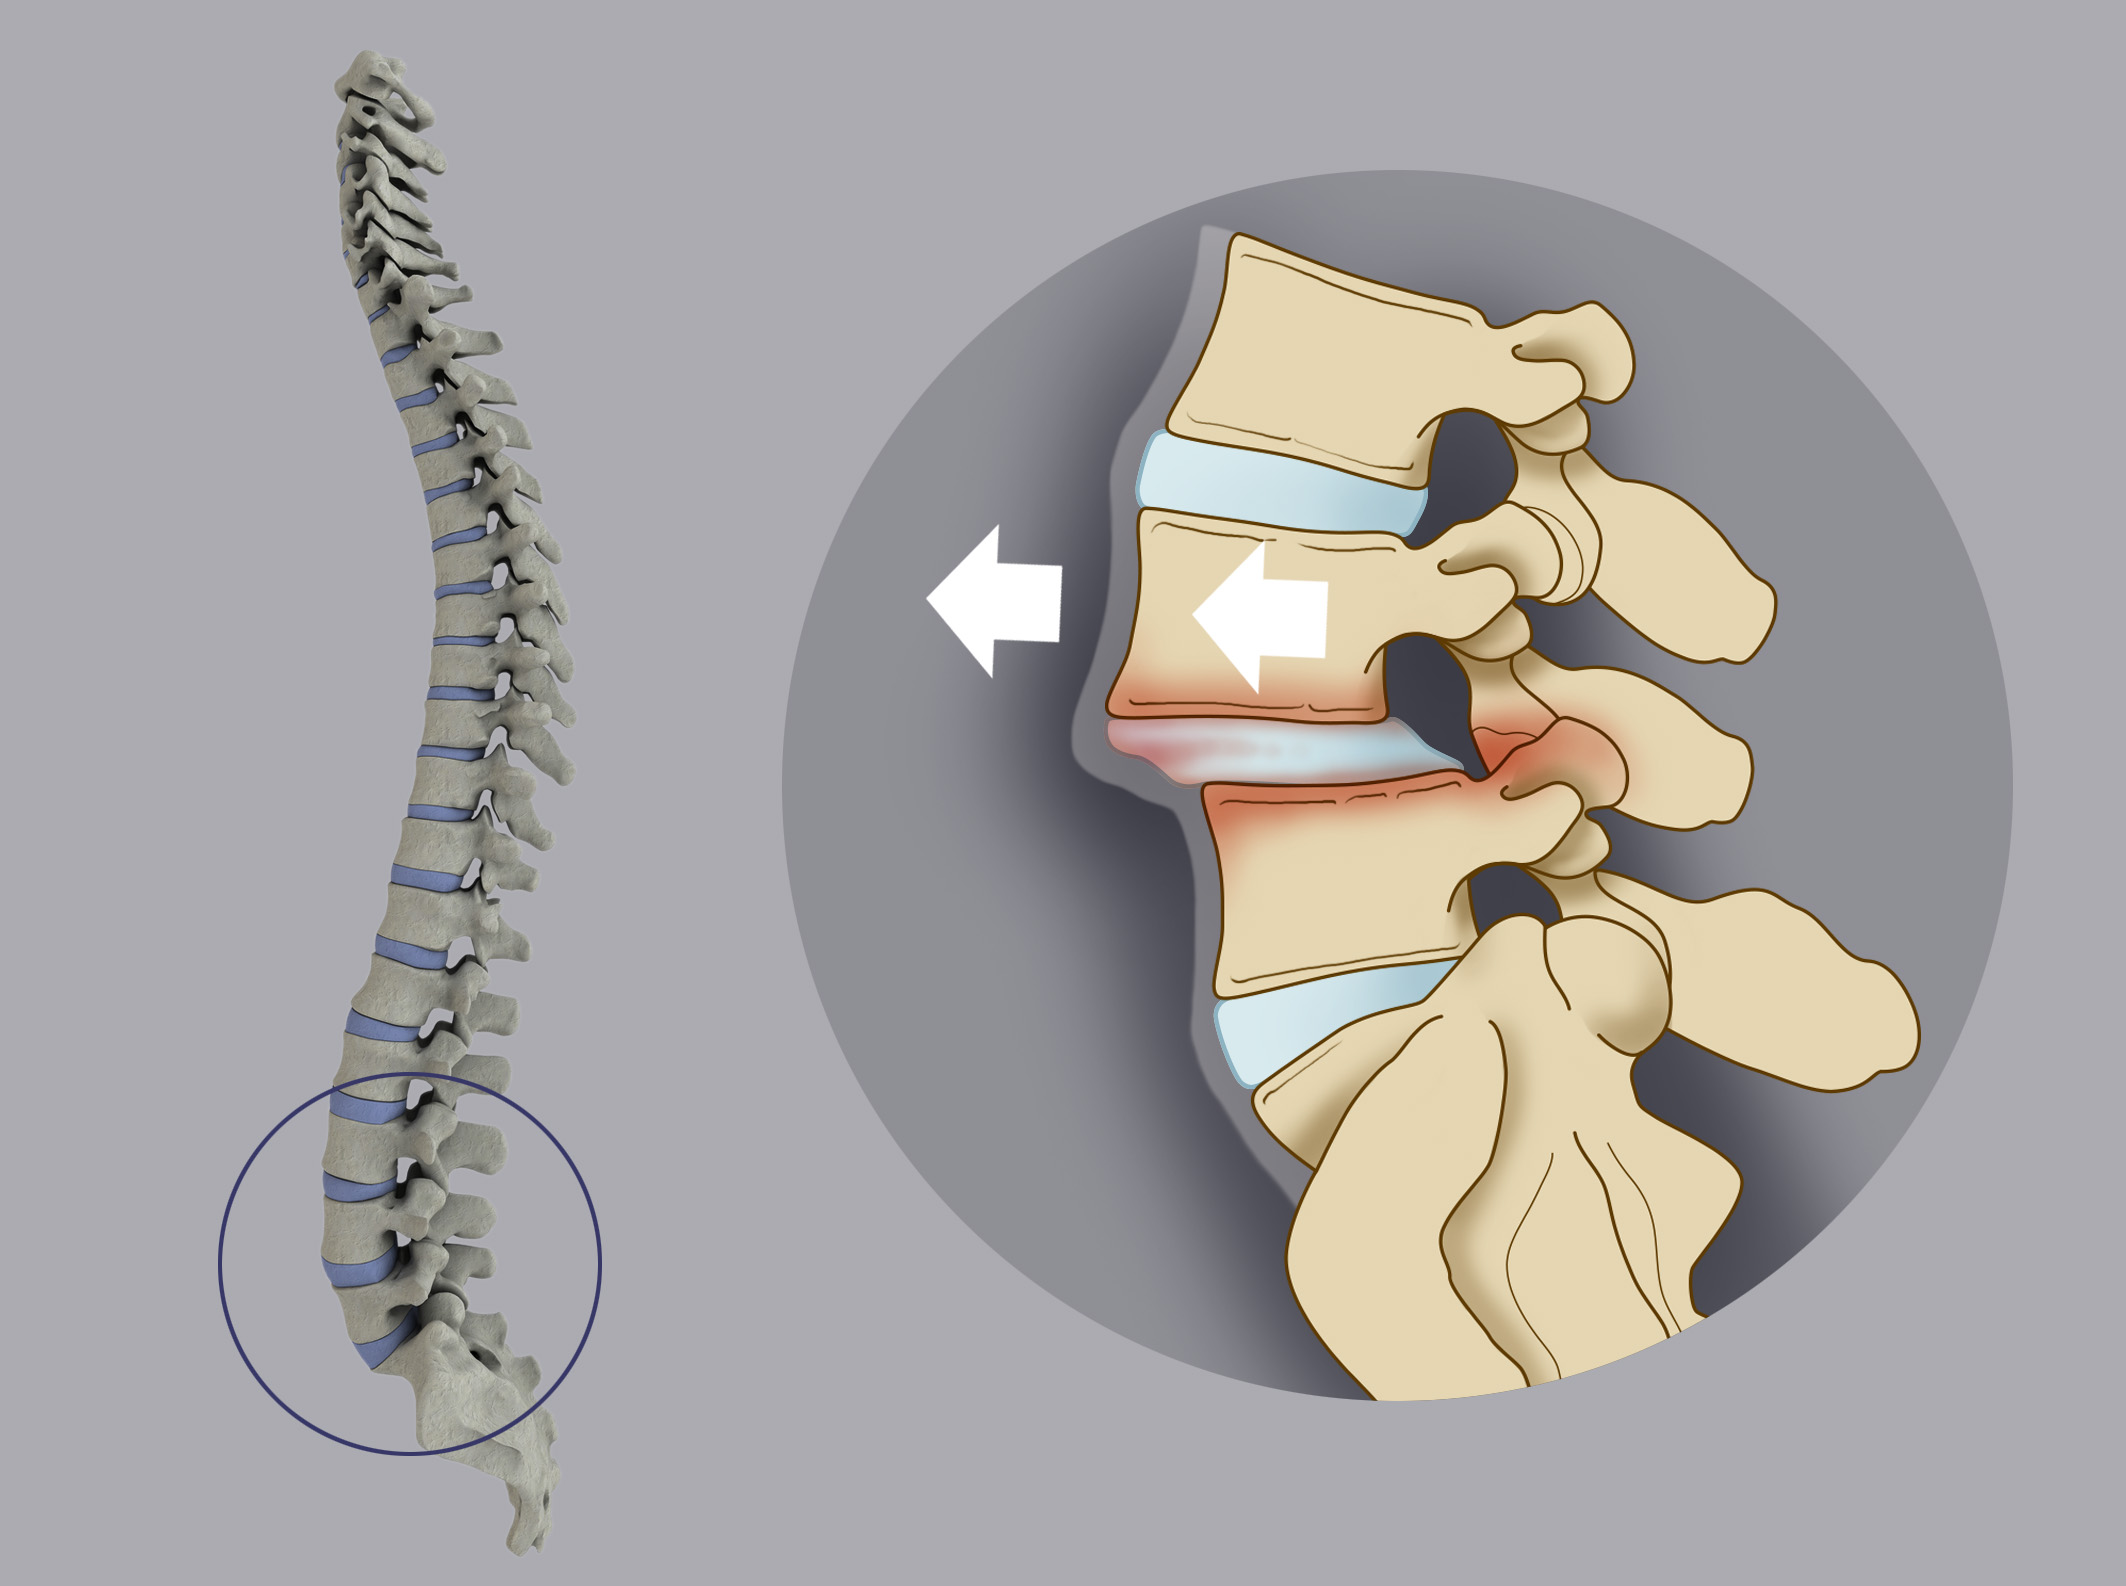 In the macro-instability of the spine loses its normal alignment and the vertebrae slip one over the  other resulting in the condition defined as spondylolisthesis.